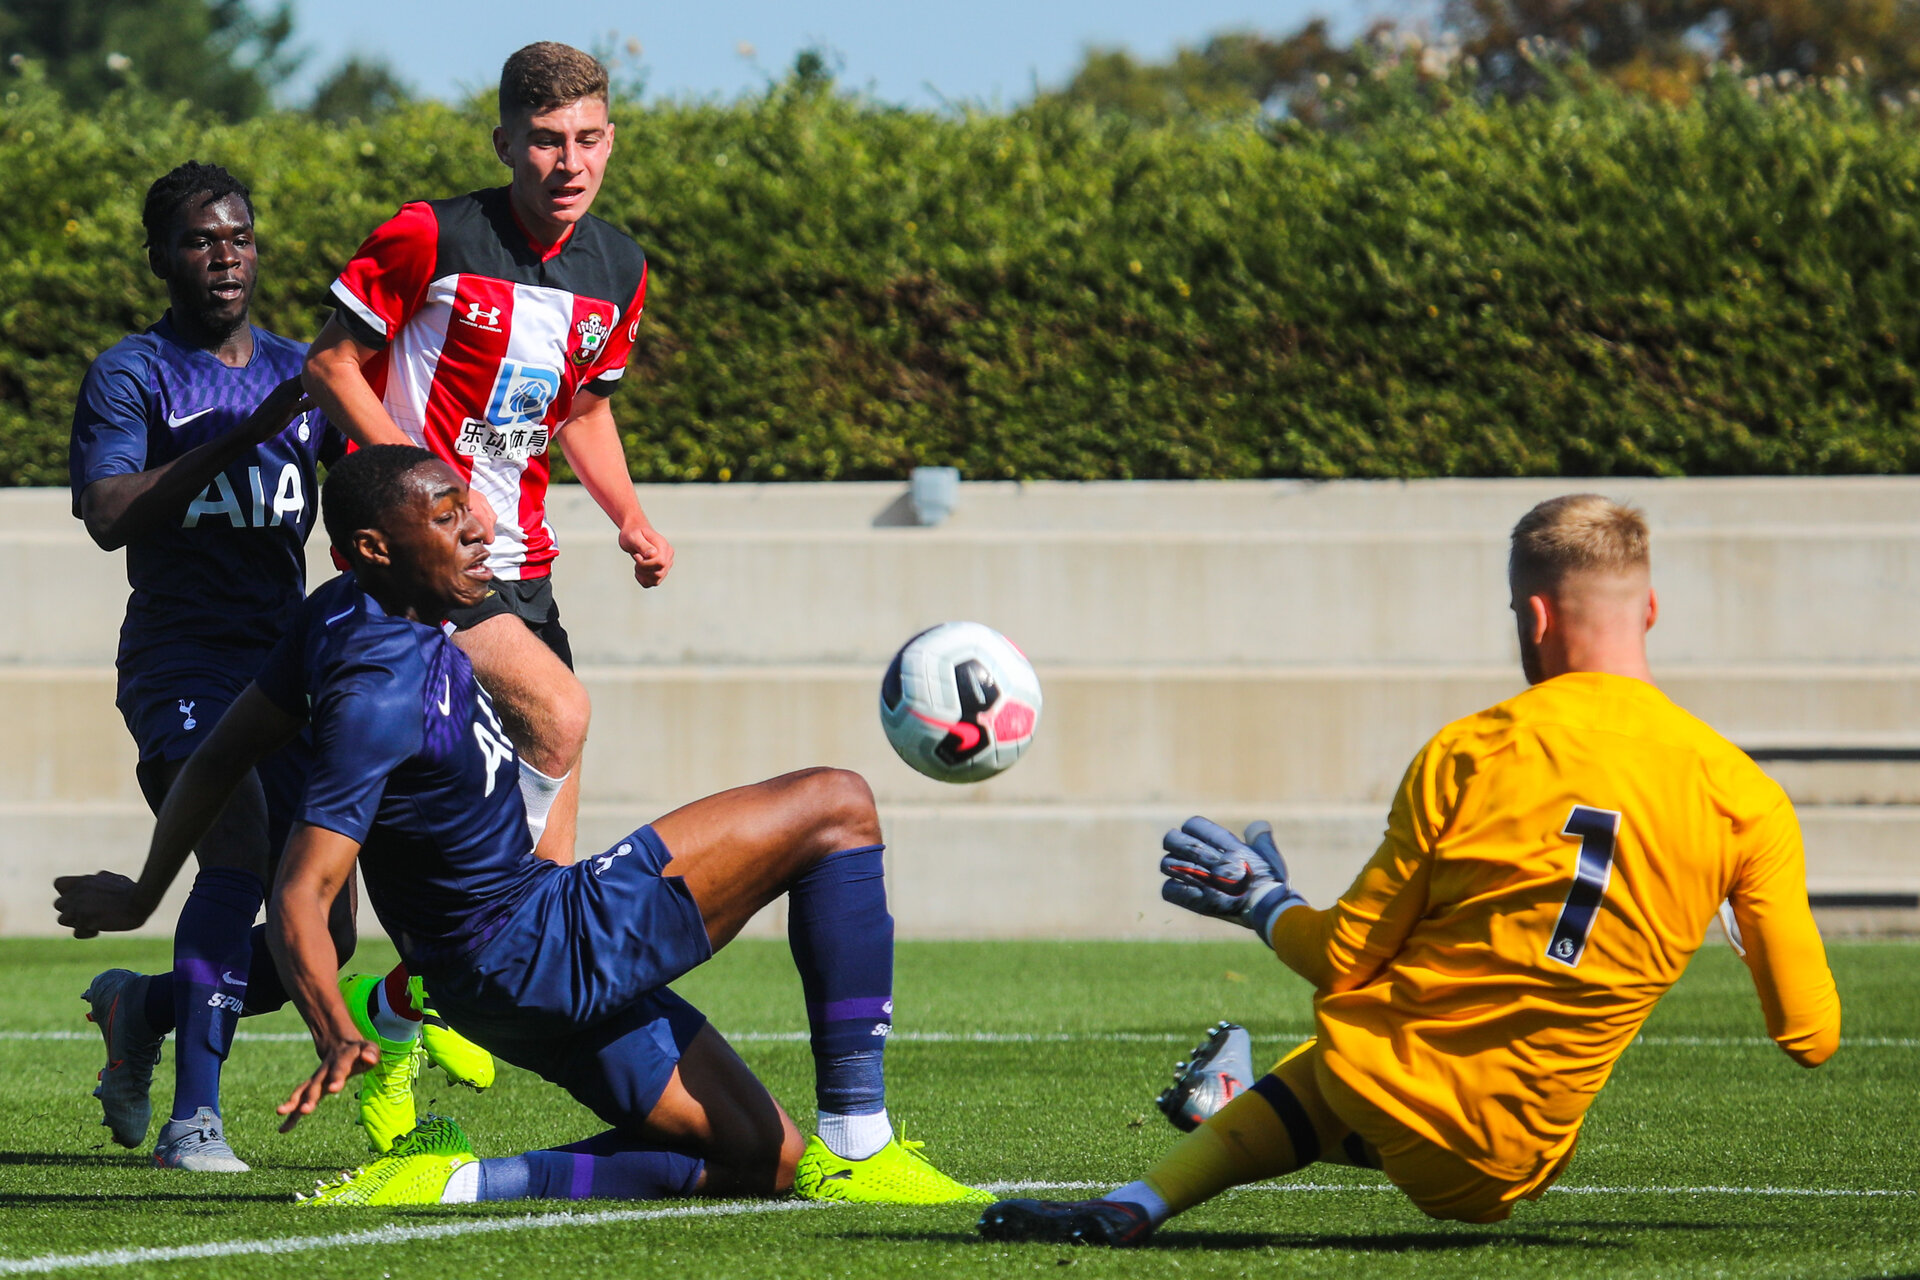 SOUTHAMPTON, ENGLAND - SEPTEMBER 21: Southampton FC number 3 has a shot during the Under 18s match between Southampton FC and Tottenham Hotspur at the Staplewood Campus on September 21, 2019 in Southampton, England